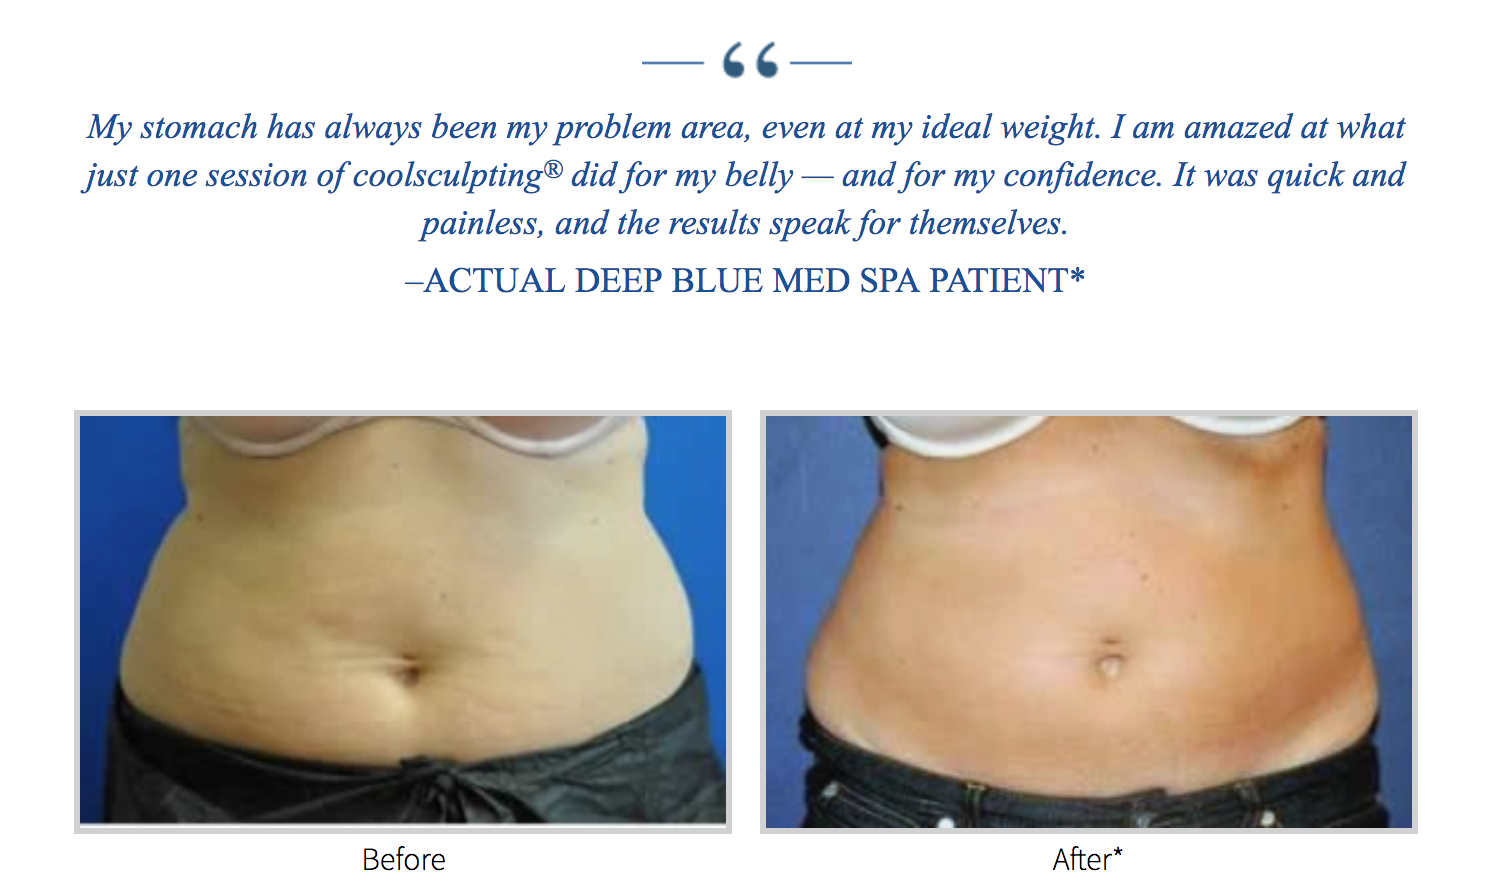 CoolSculpting Fat Reduction, Long Island, Deep Blue Med Spa